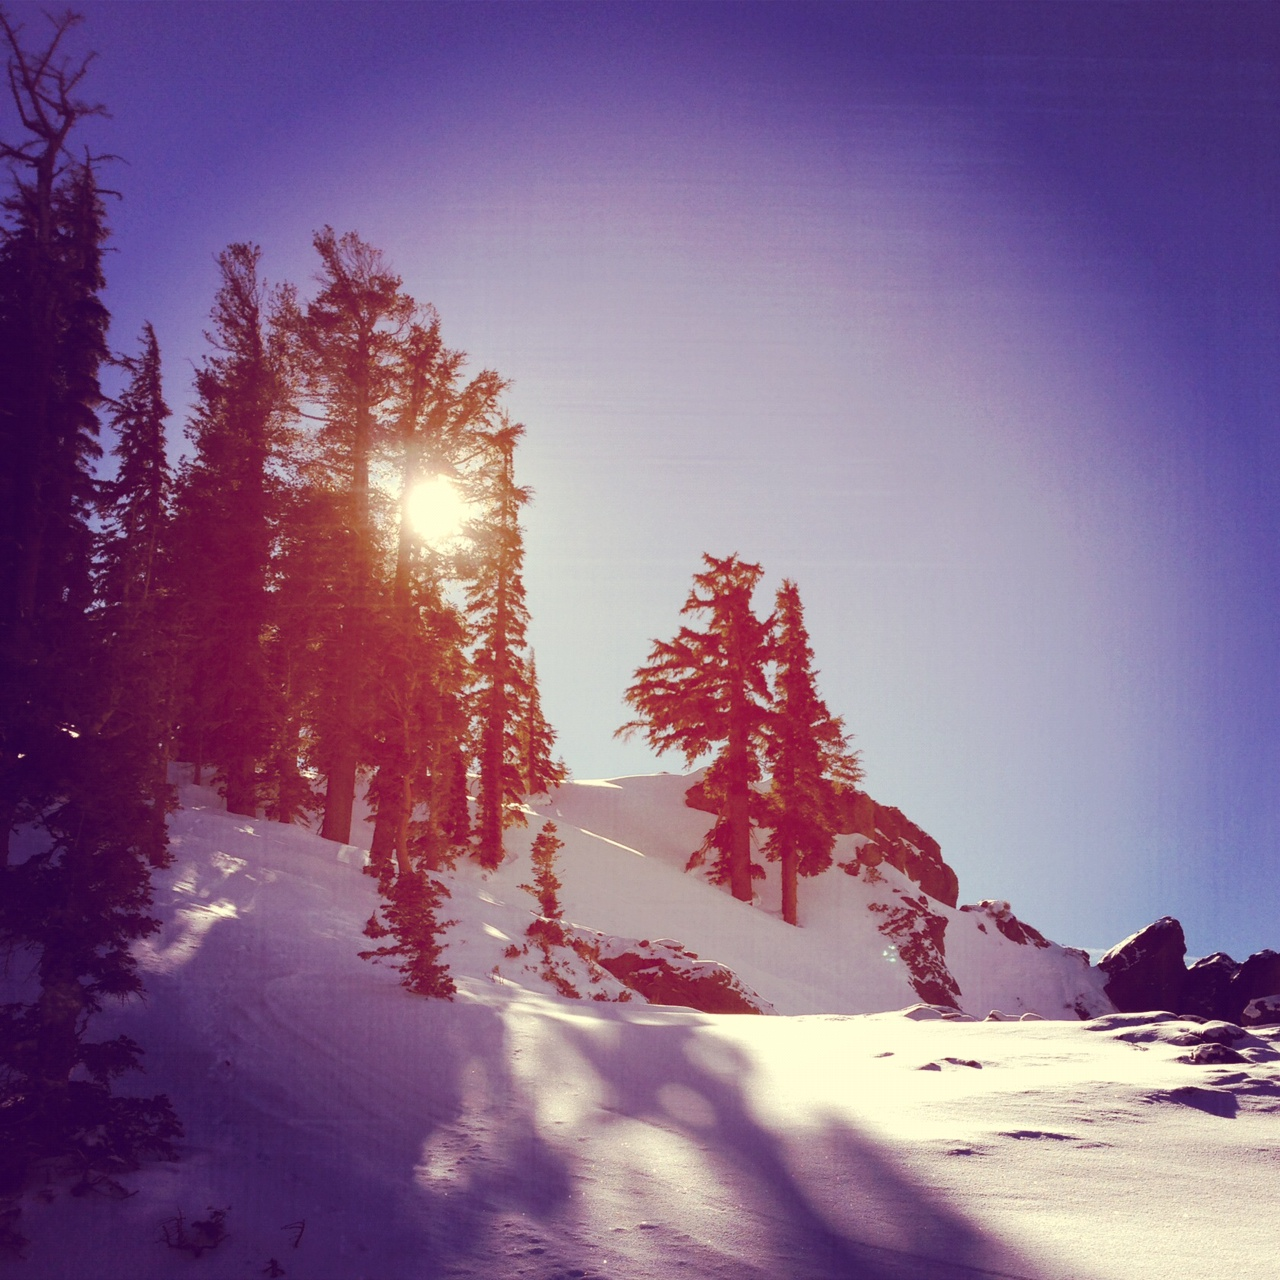 Hiking out to Munchkins at Alpine Meadows